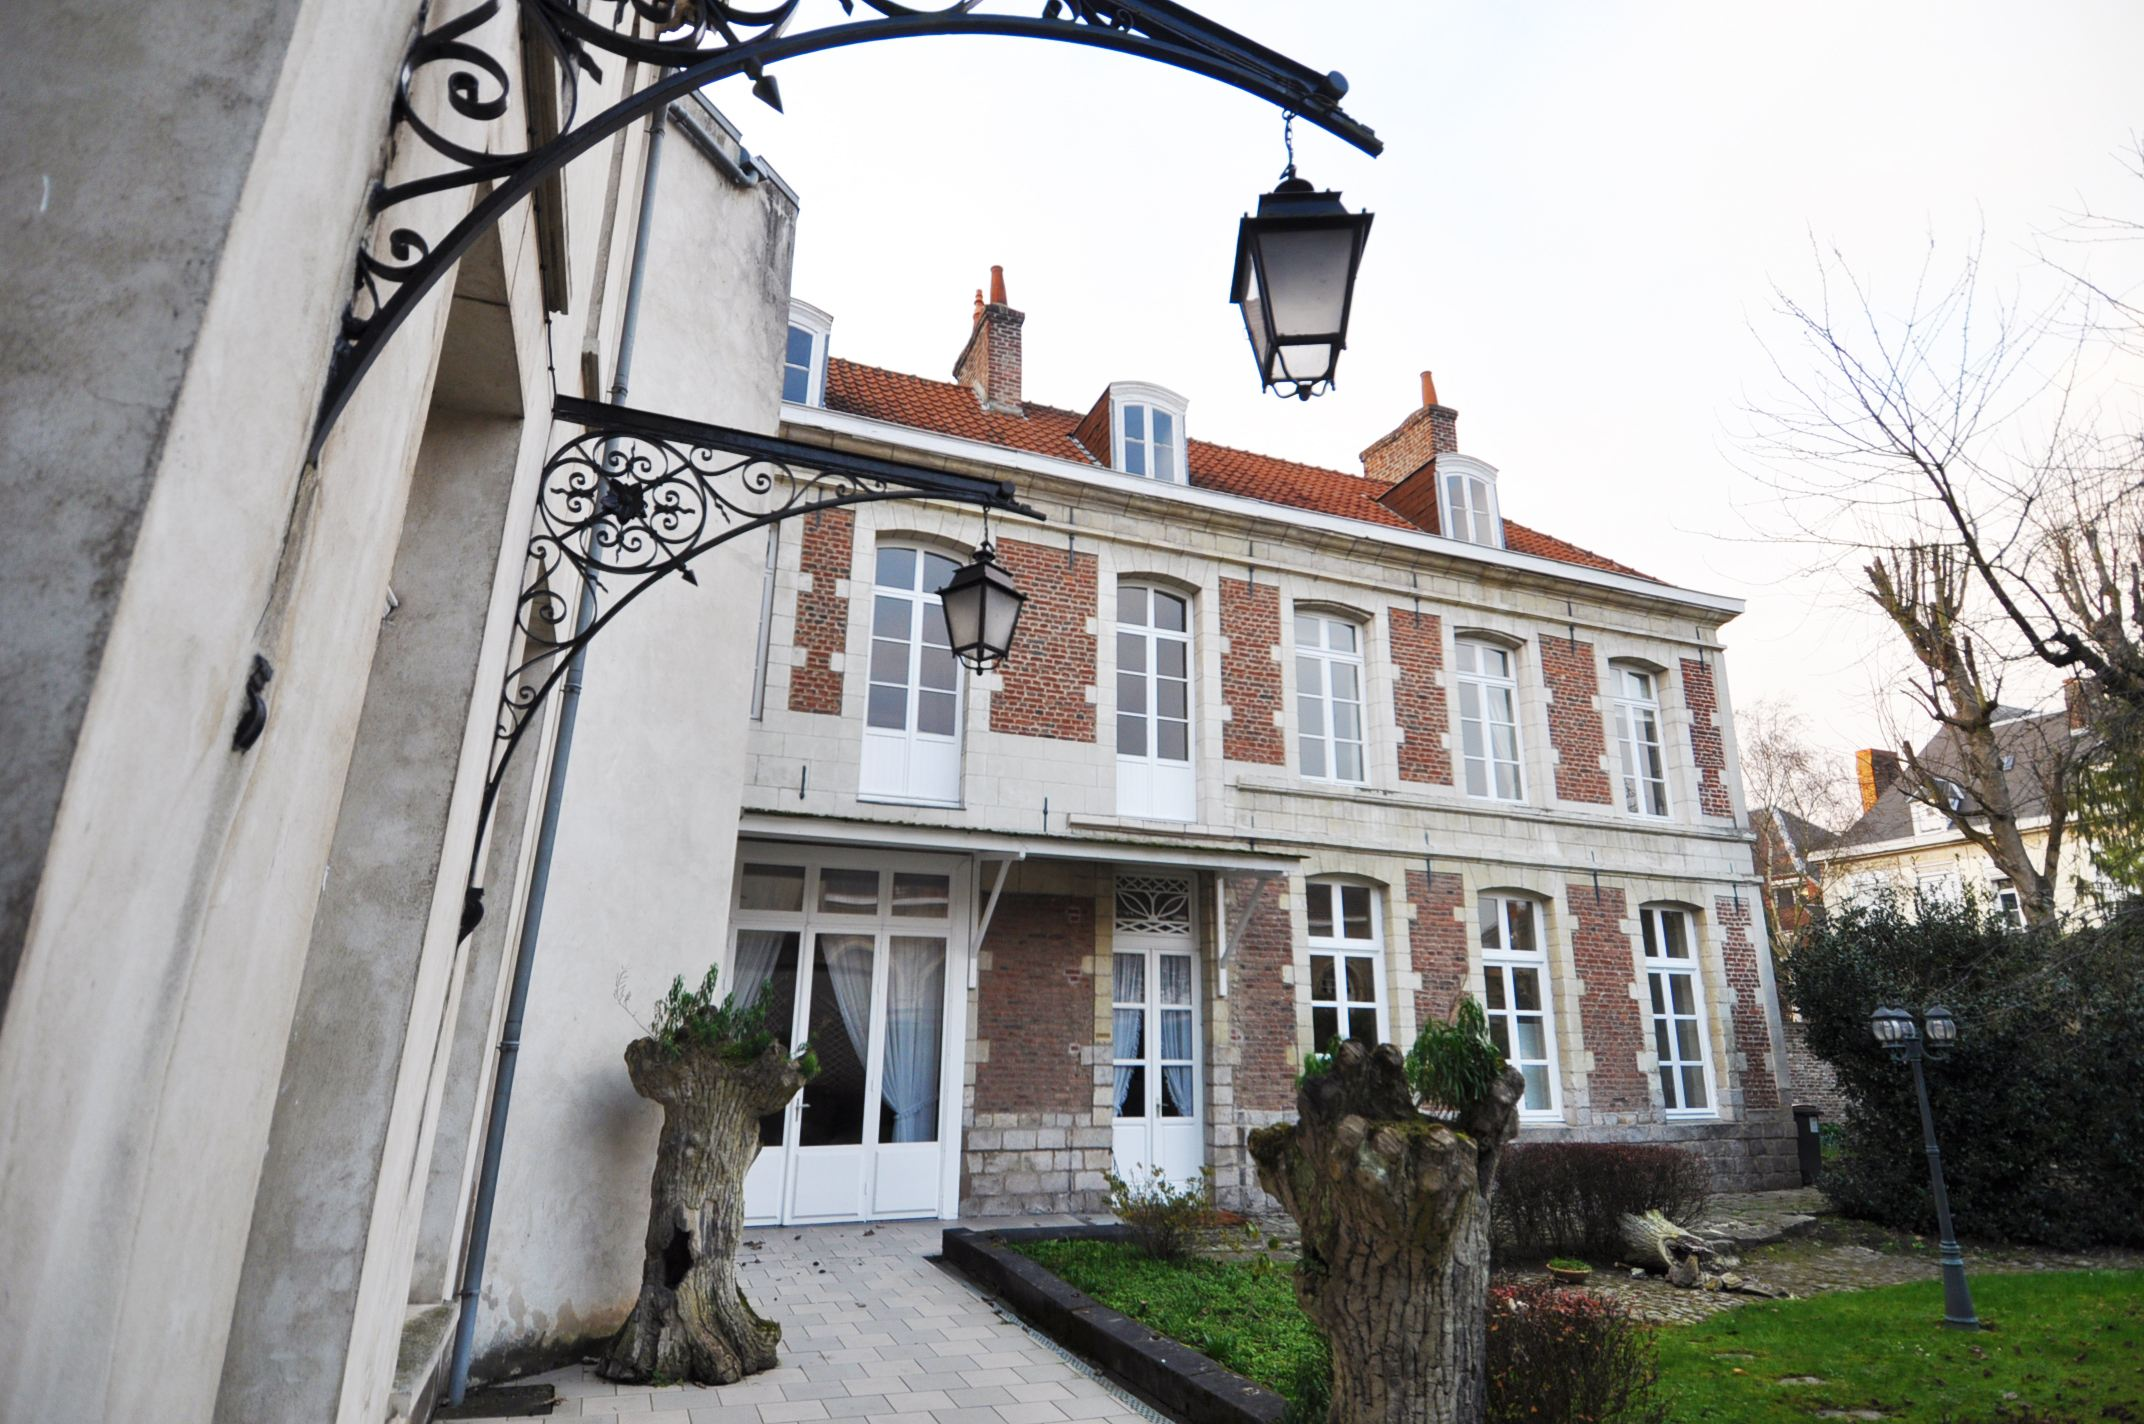 Property For Sale at Douai Centre, Small townhouse 278 m² in very good condition